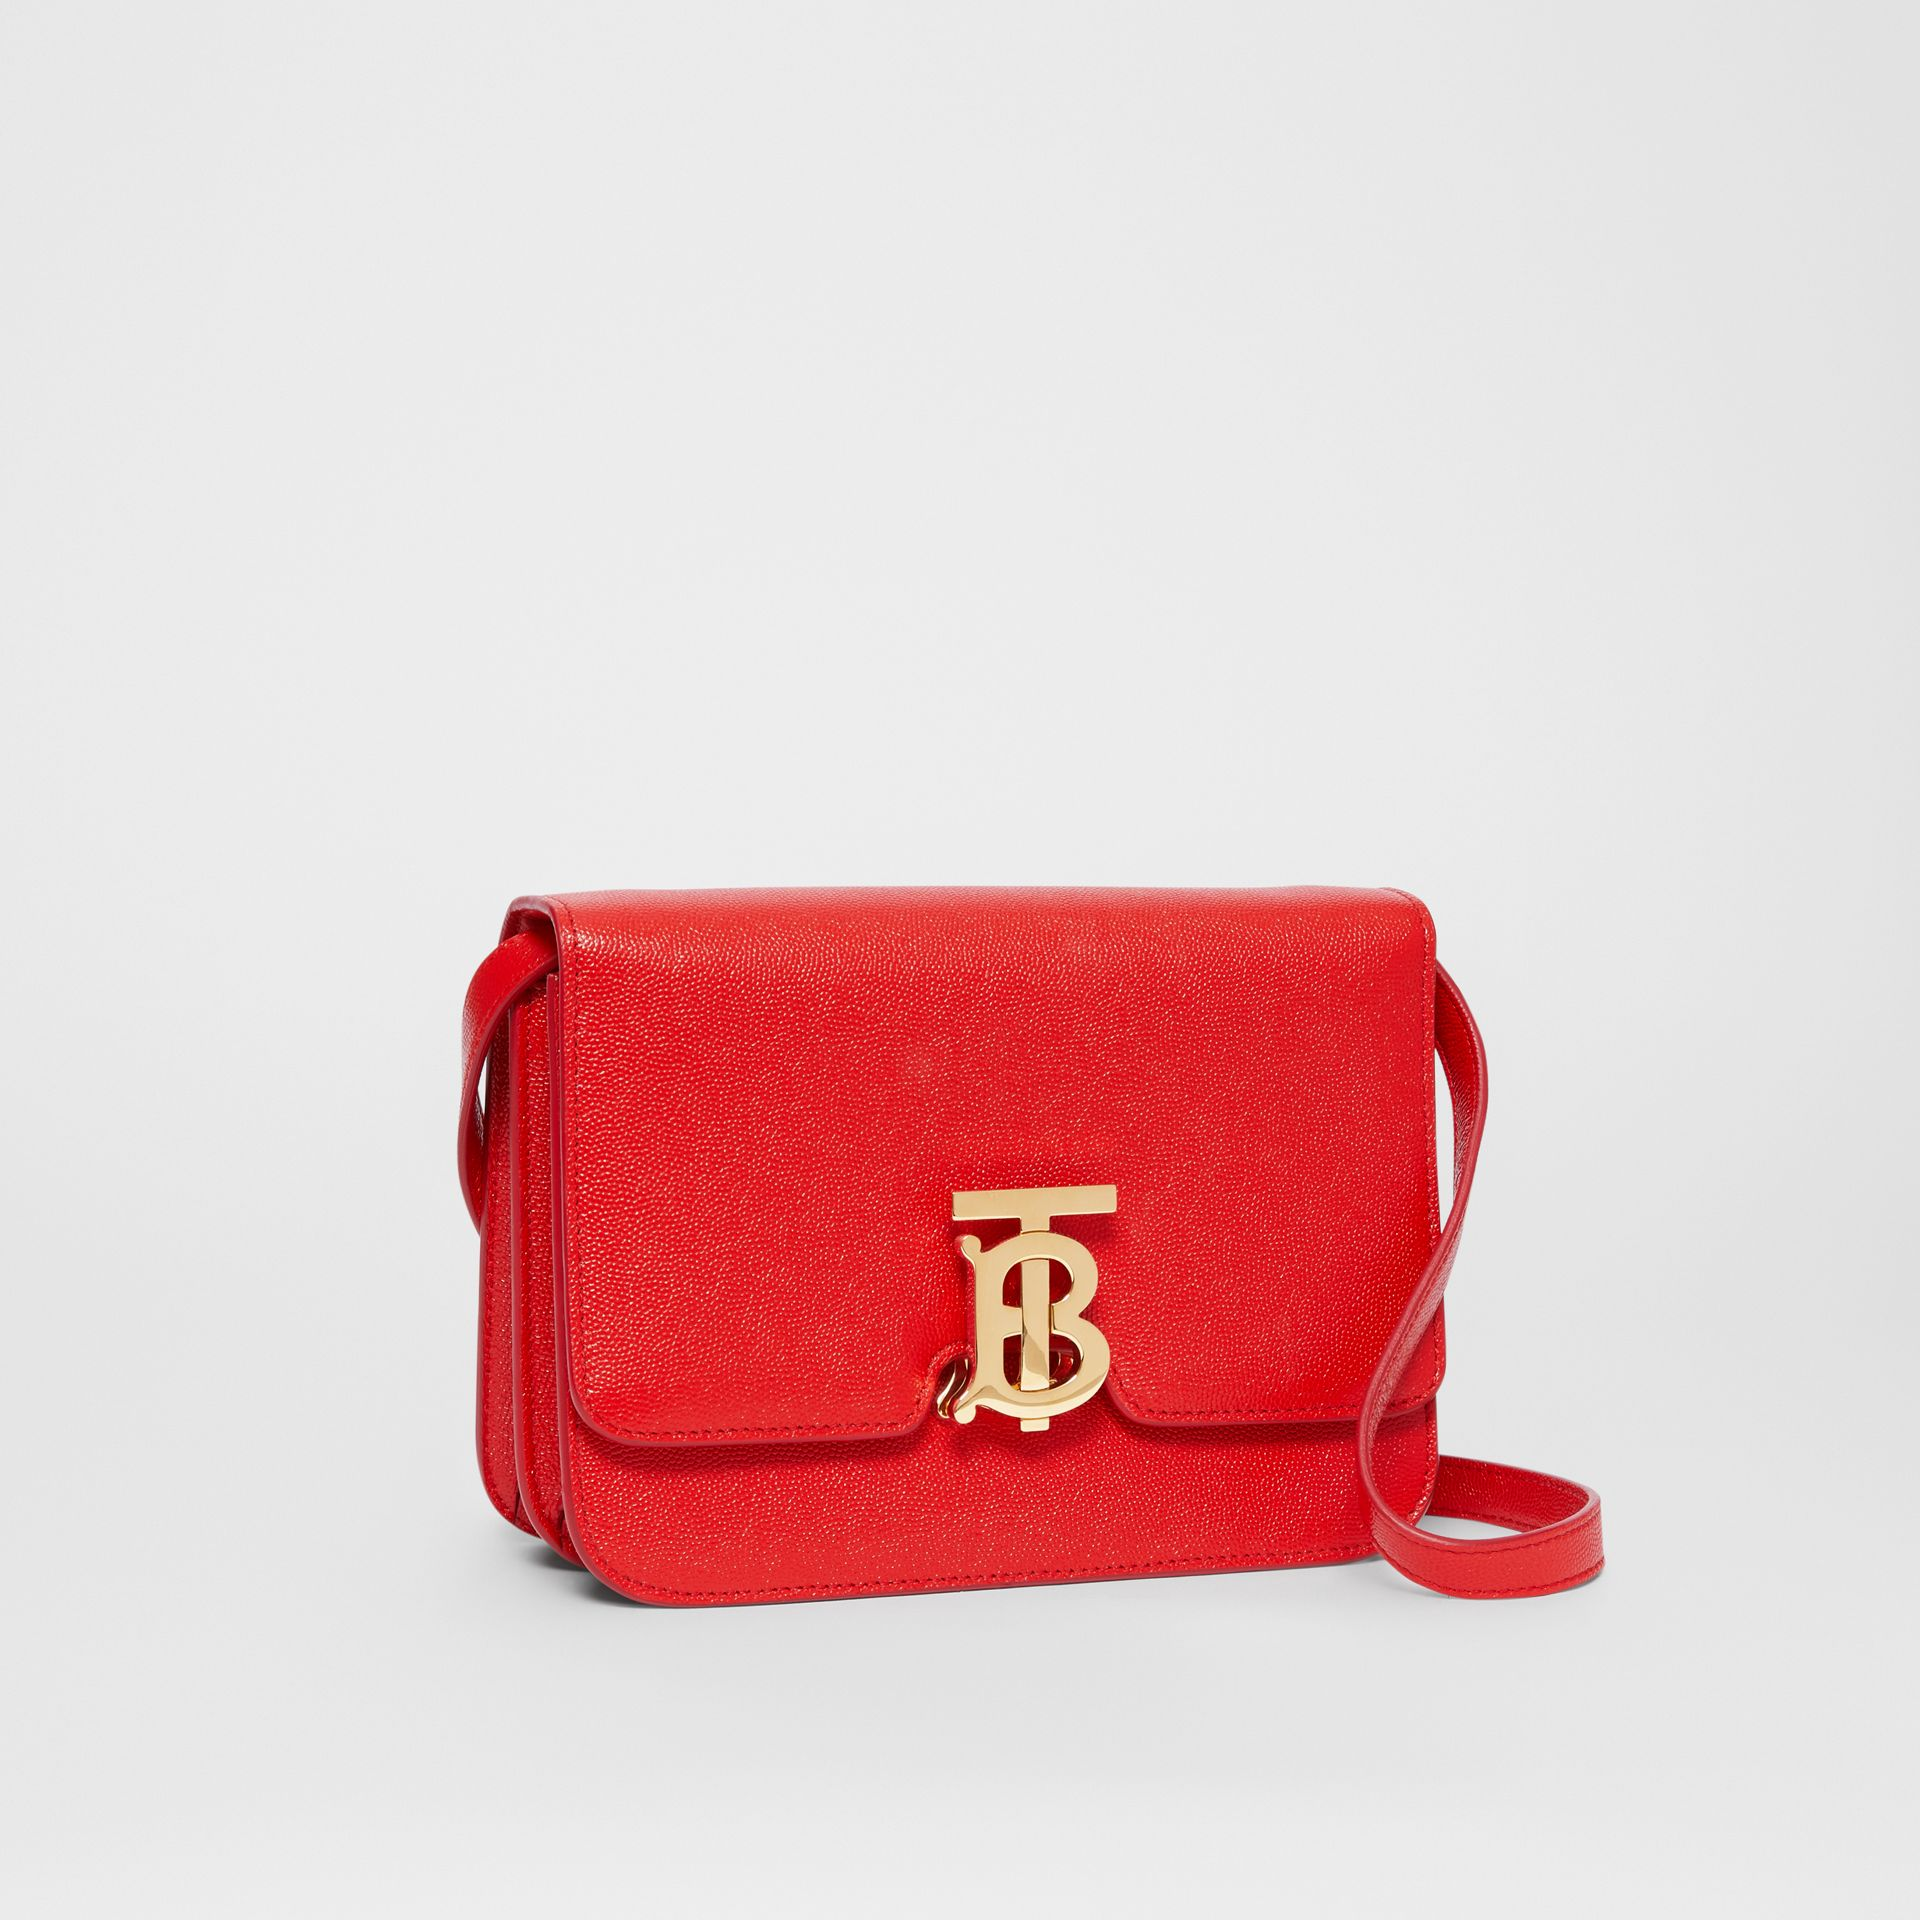 Small Grainy Leather TB Bag in Bright Red - Women | Burberry United States - gallery image 6